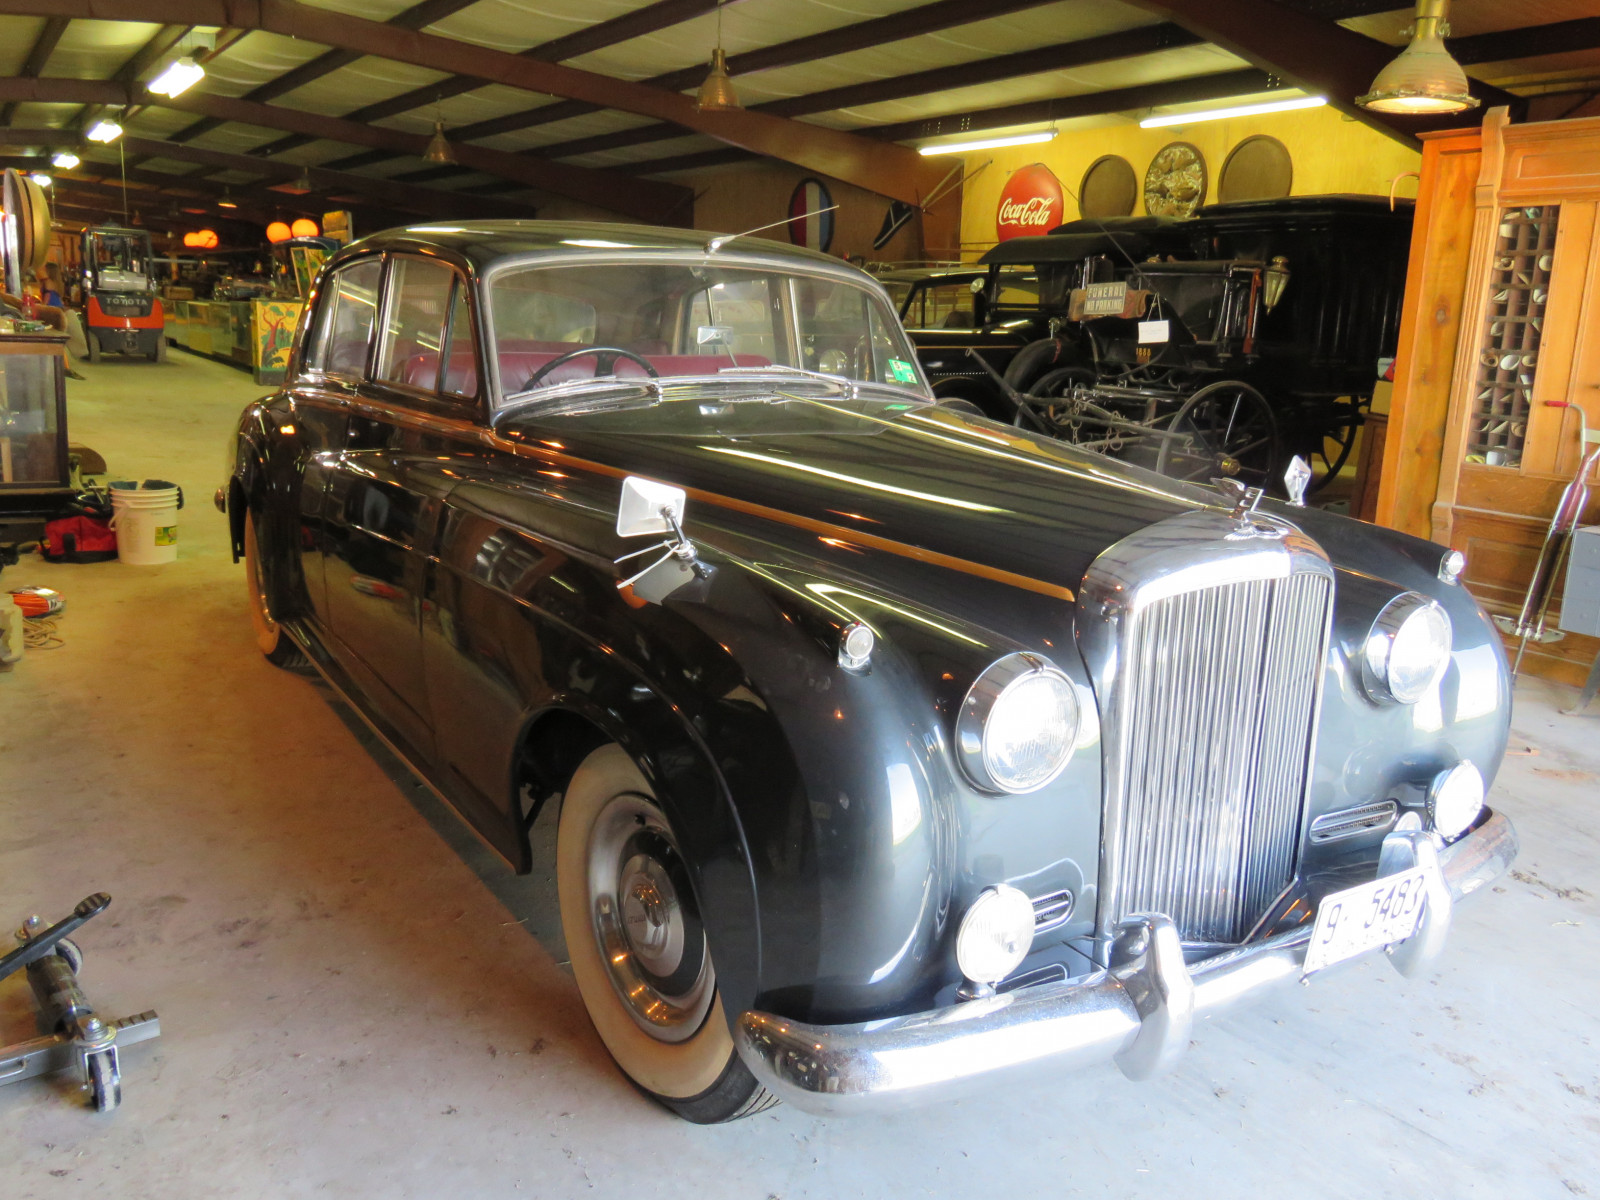 1956 Bentley 4dr Sedan - Image 10